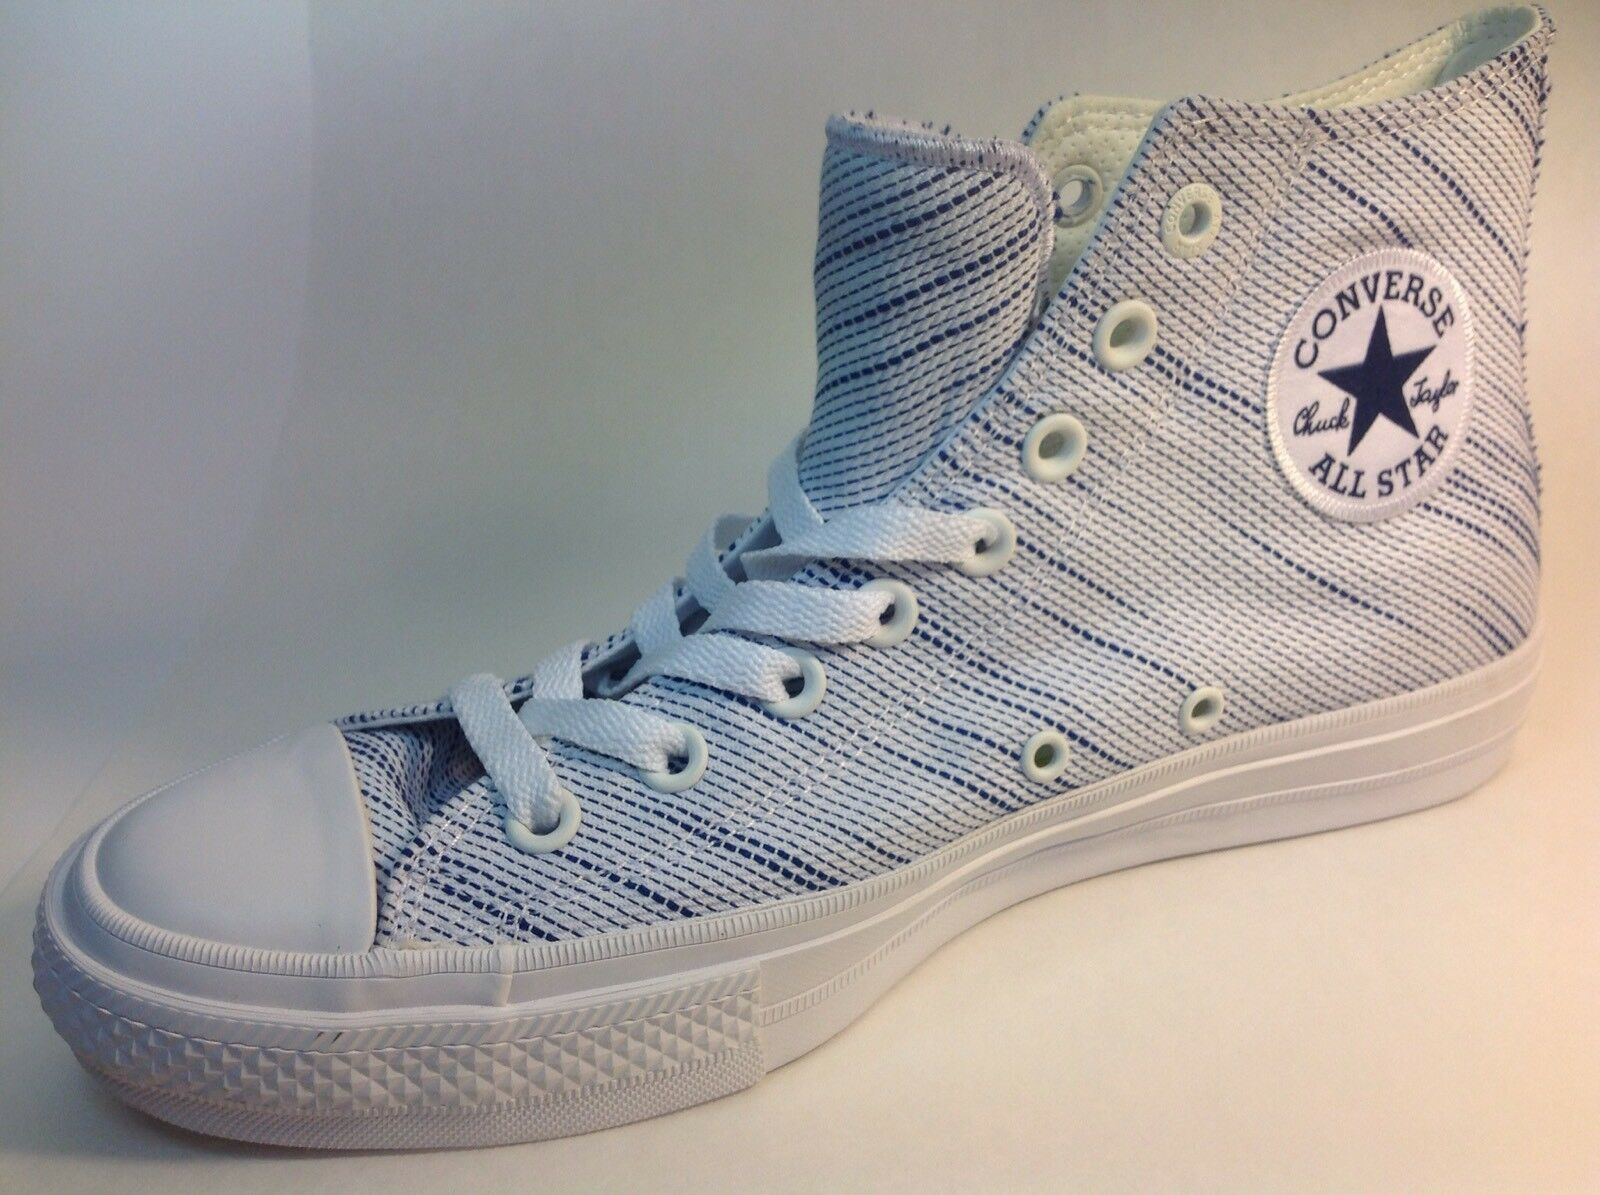 Converse, 151085C, Hi White, Chuck Taylor, All Star, Blue, Size 7.5 Womens Shoes